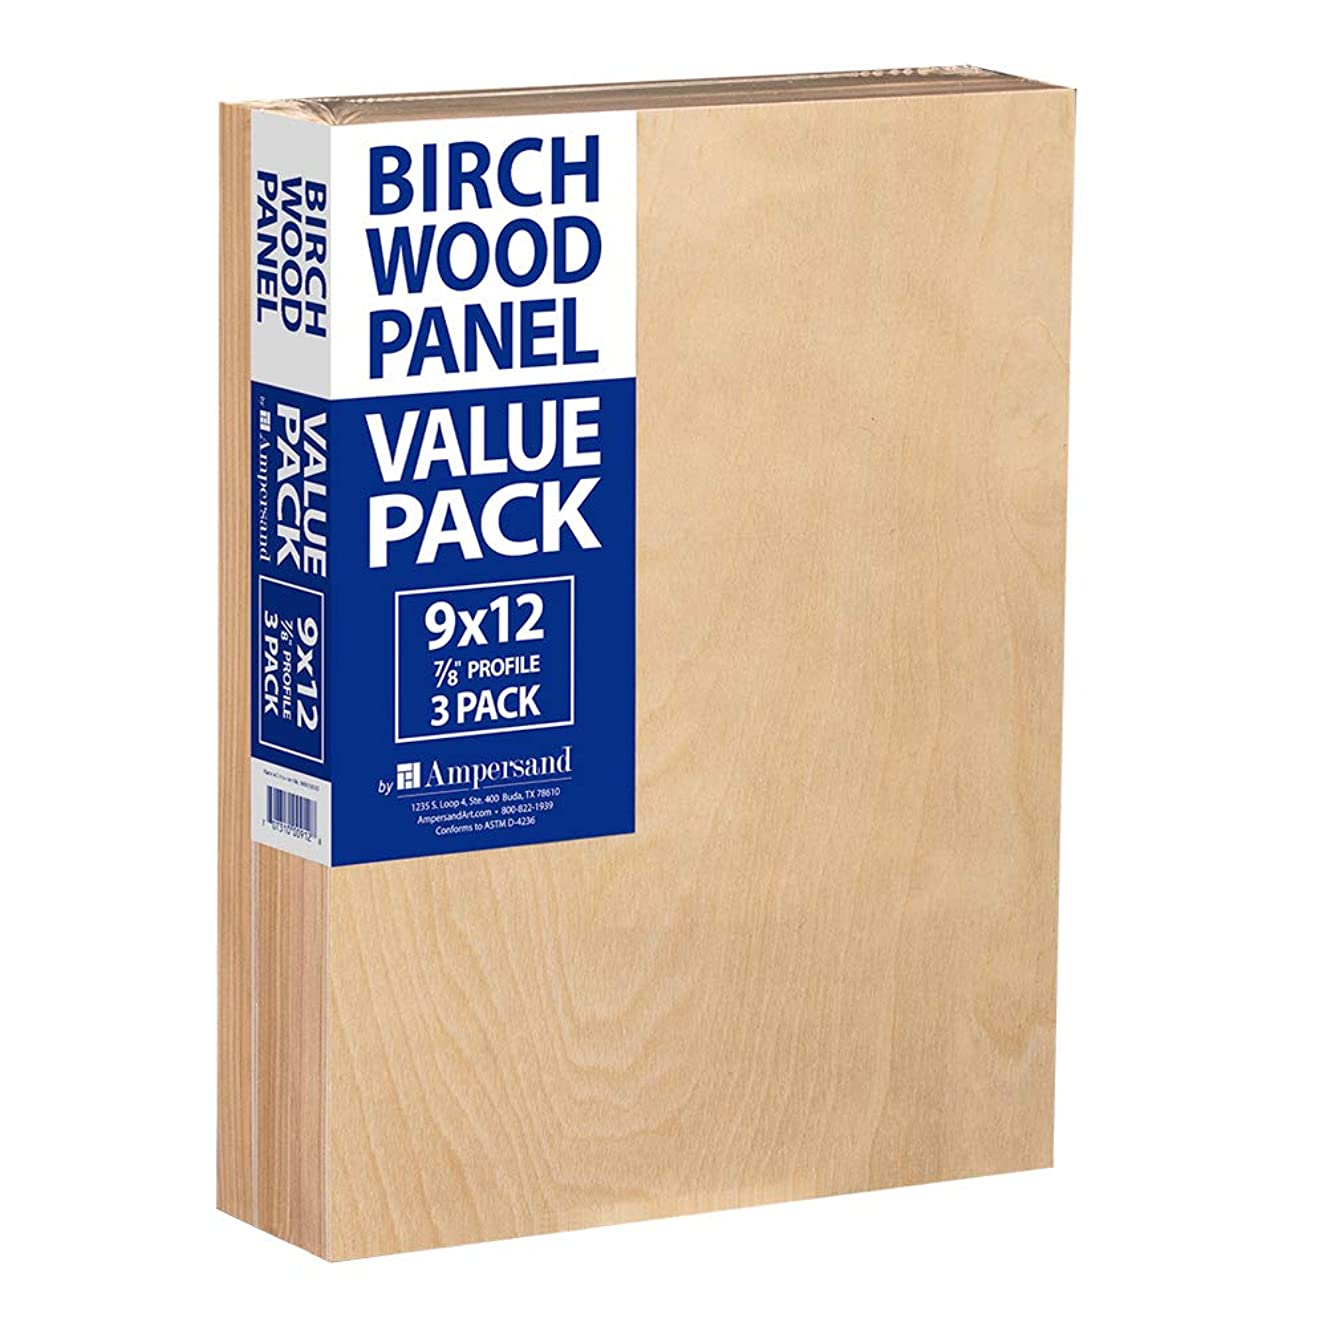 Ampersand Birch Wood Panel Value Pack, 7/8 inch Thickness, 9x12 inch Panels, 3-Pack (BMP8750912)